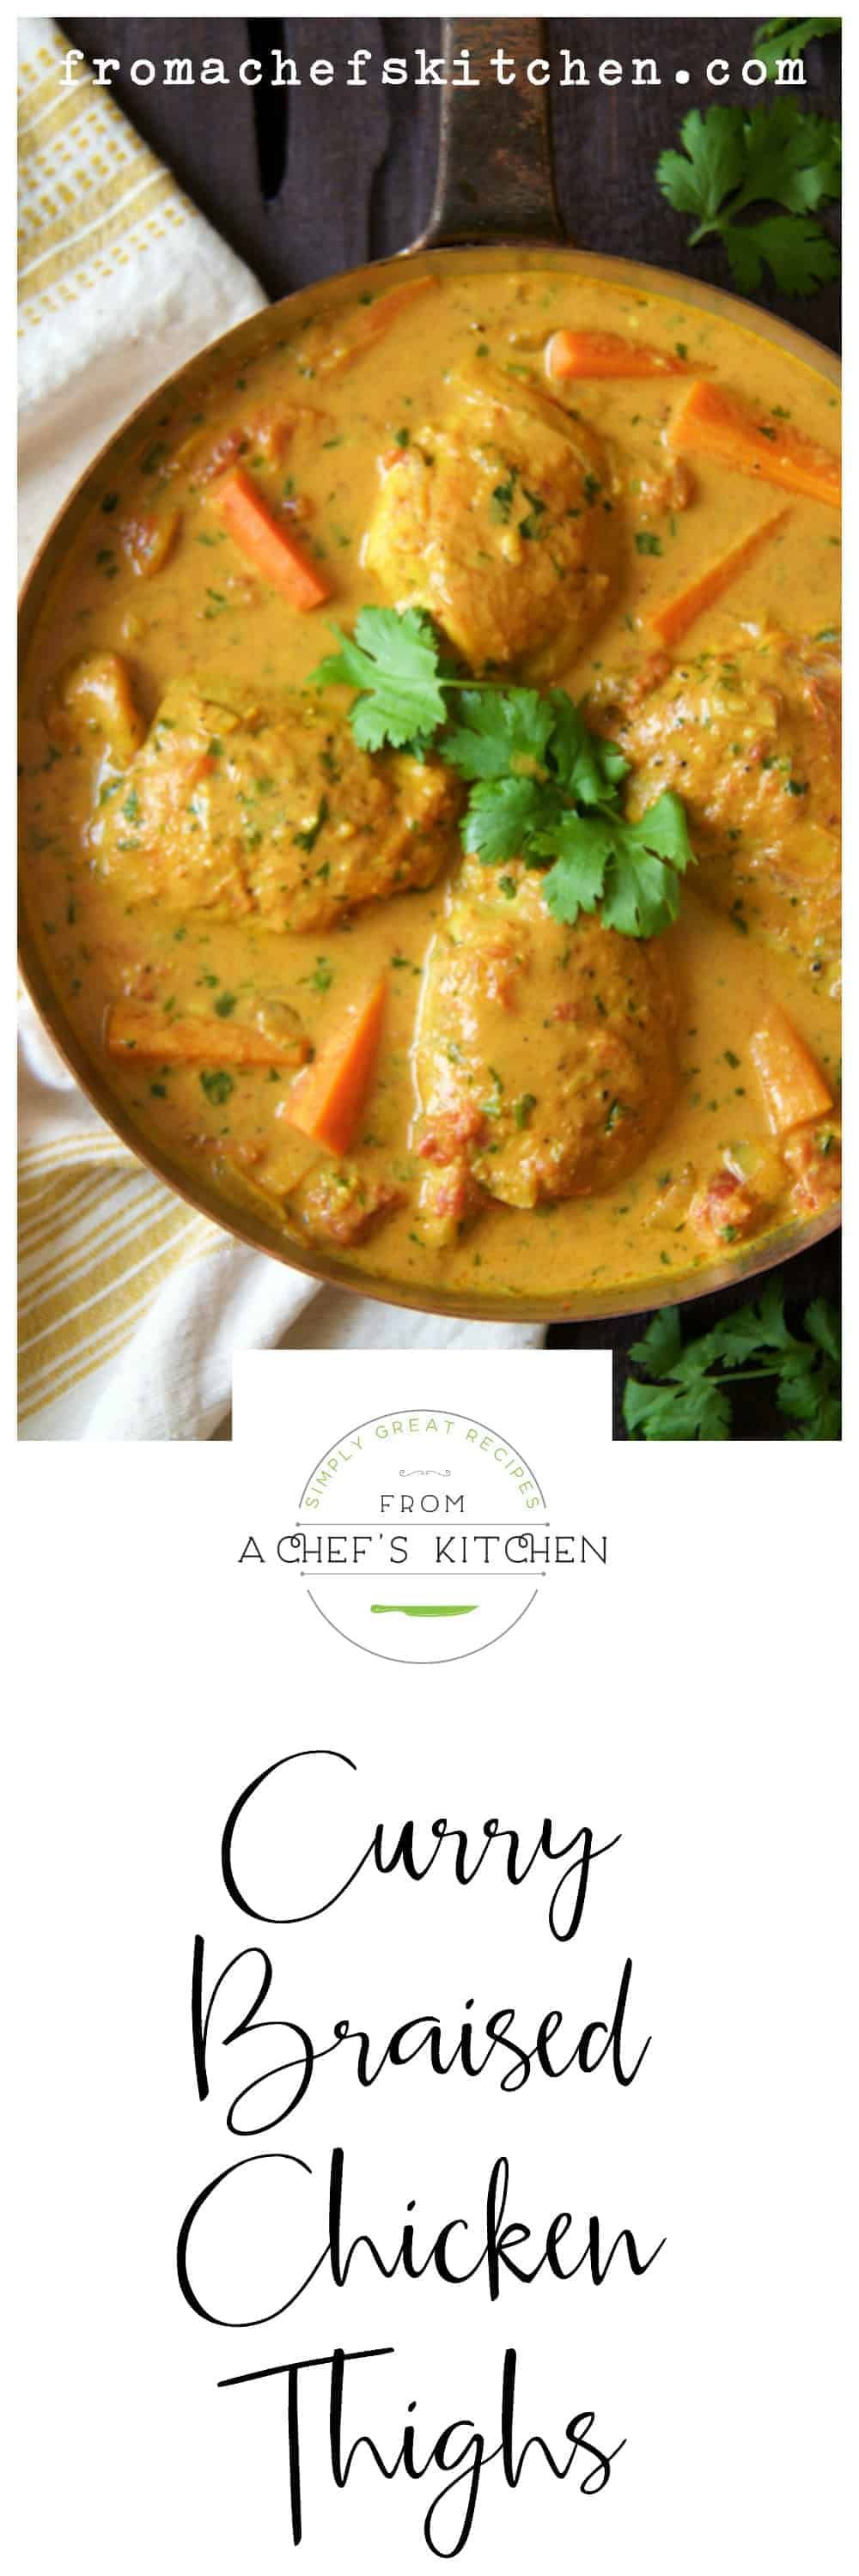 Curry braised chicken thighs from a chefs kitchen curry braised chicken thighs forumfinder Choice Image